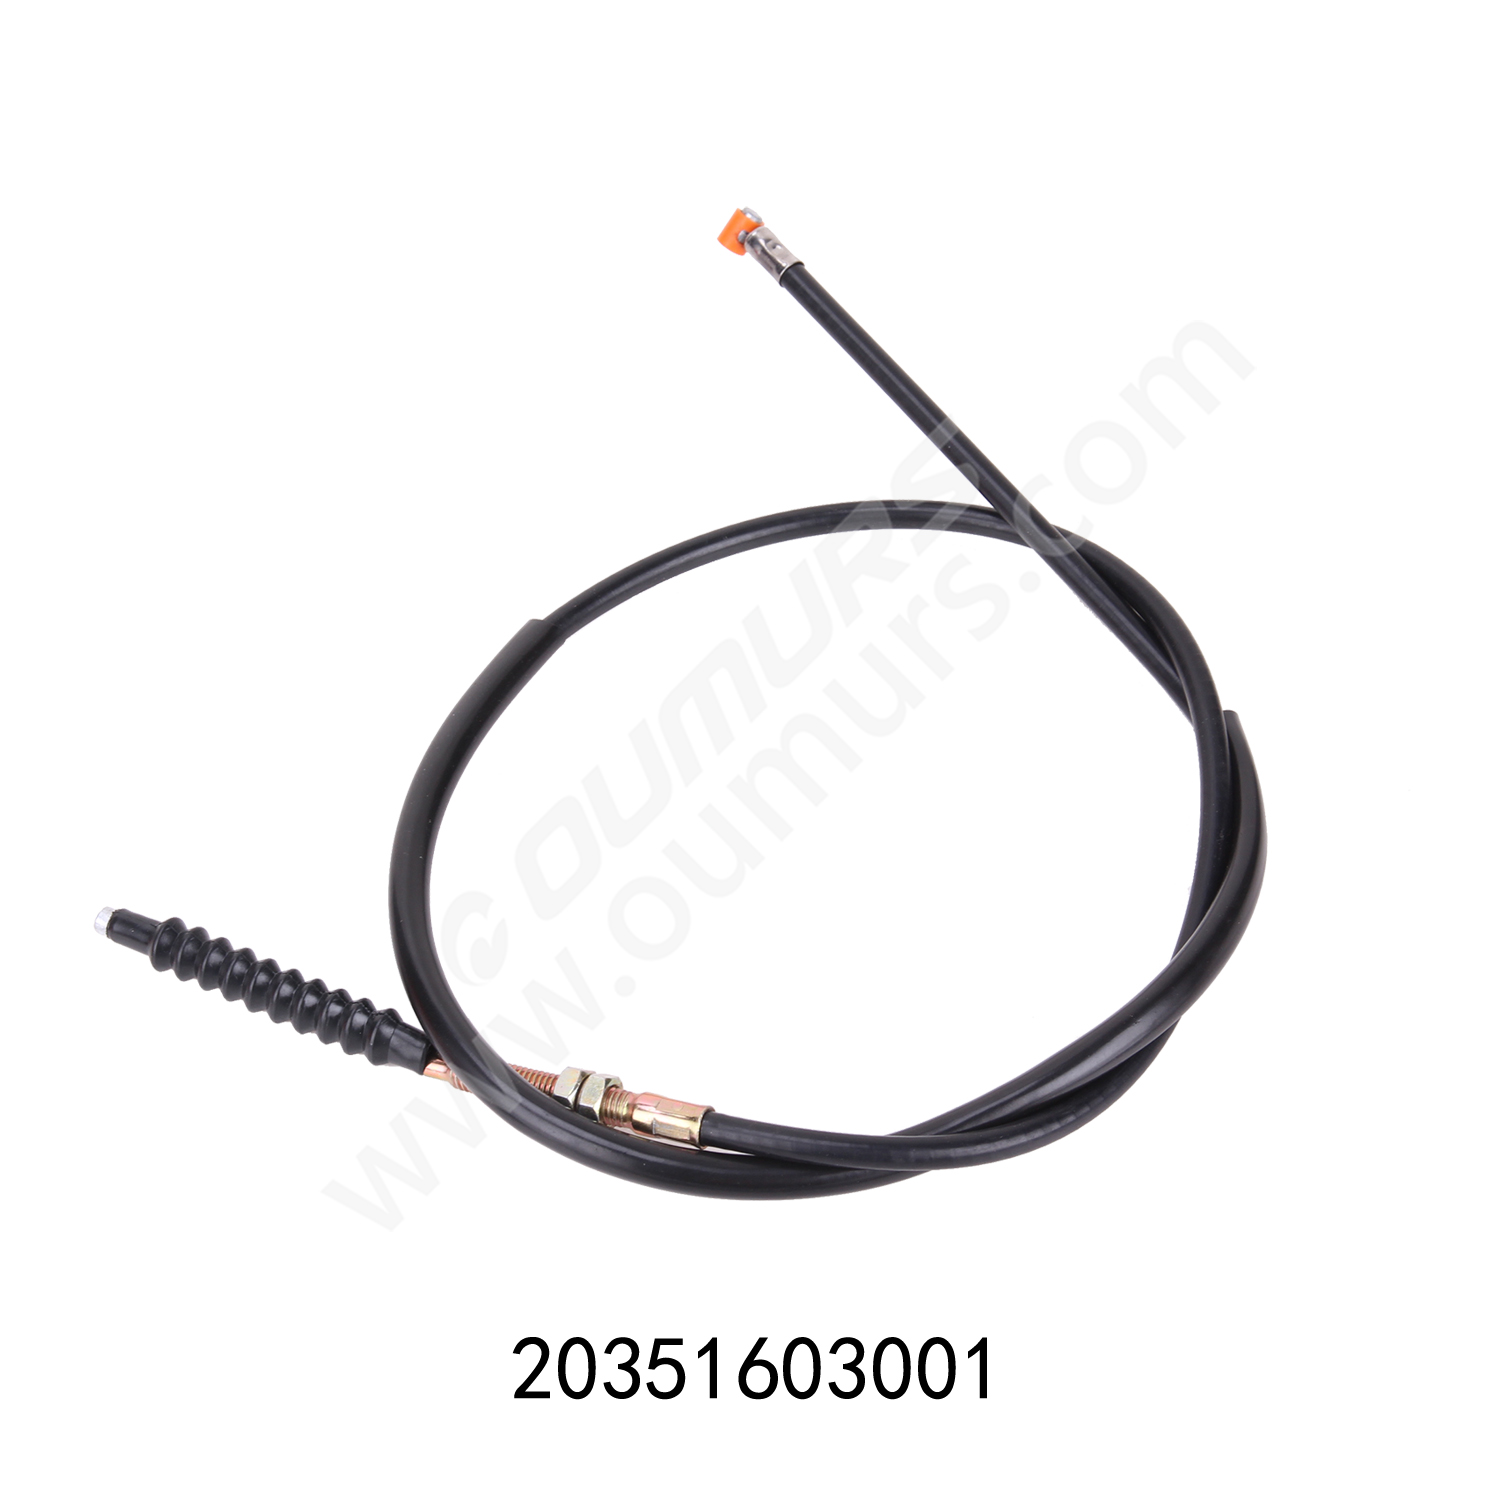 CLUTCH CABLE-CG125